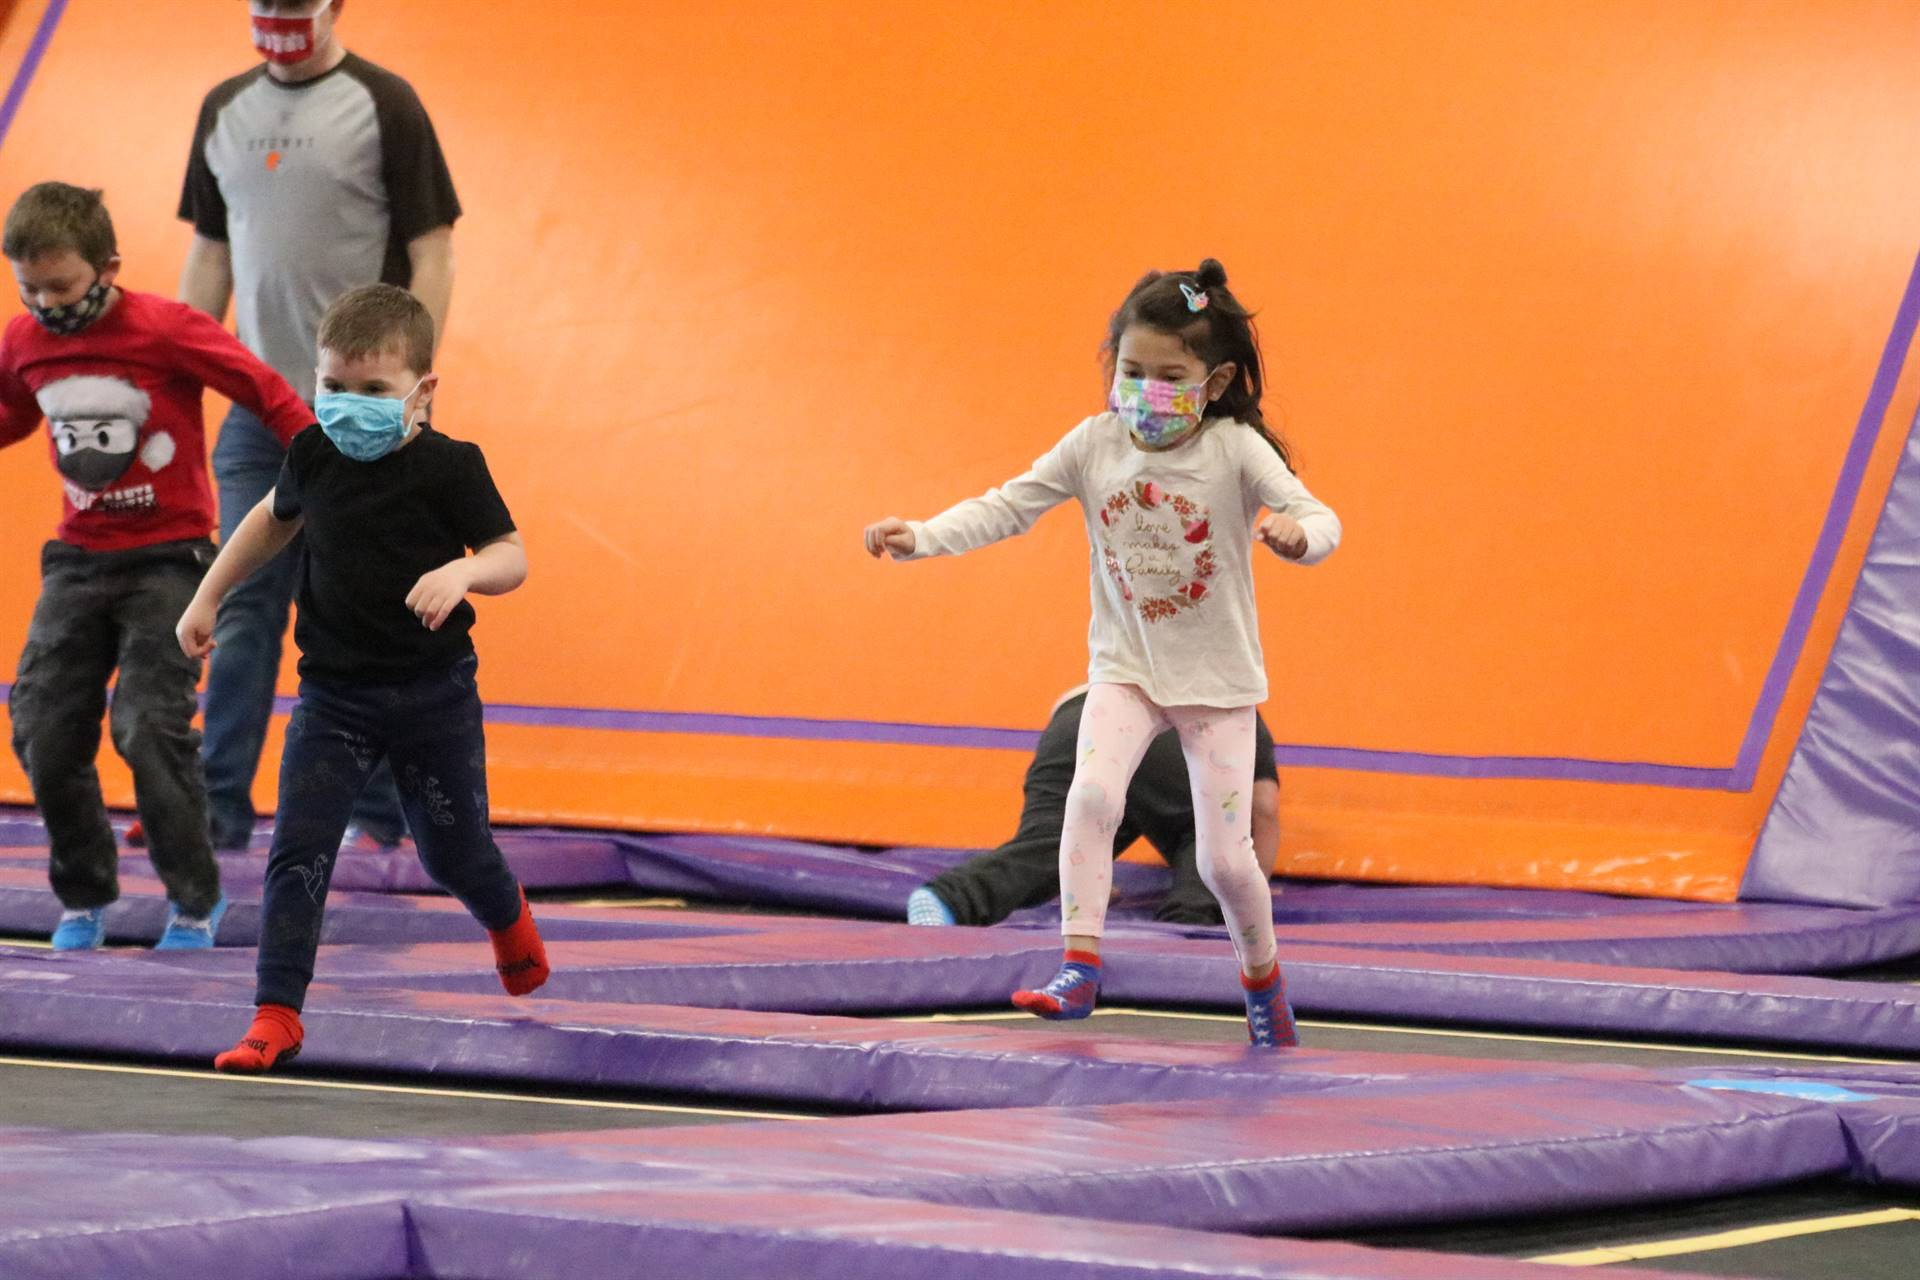 2 boys and 1 girl jumping